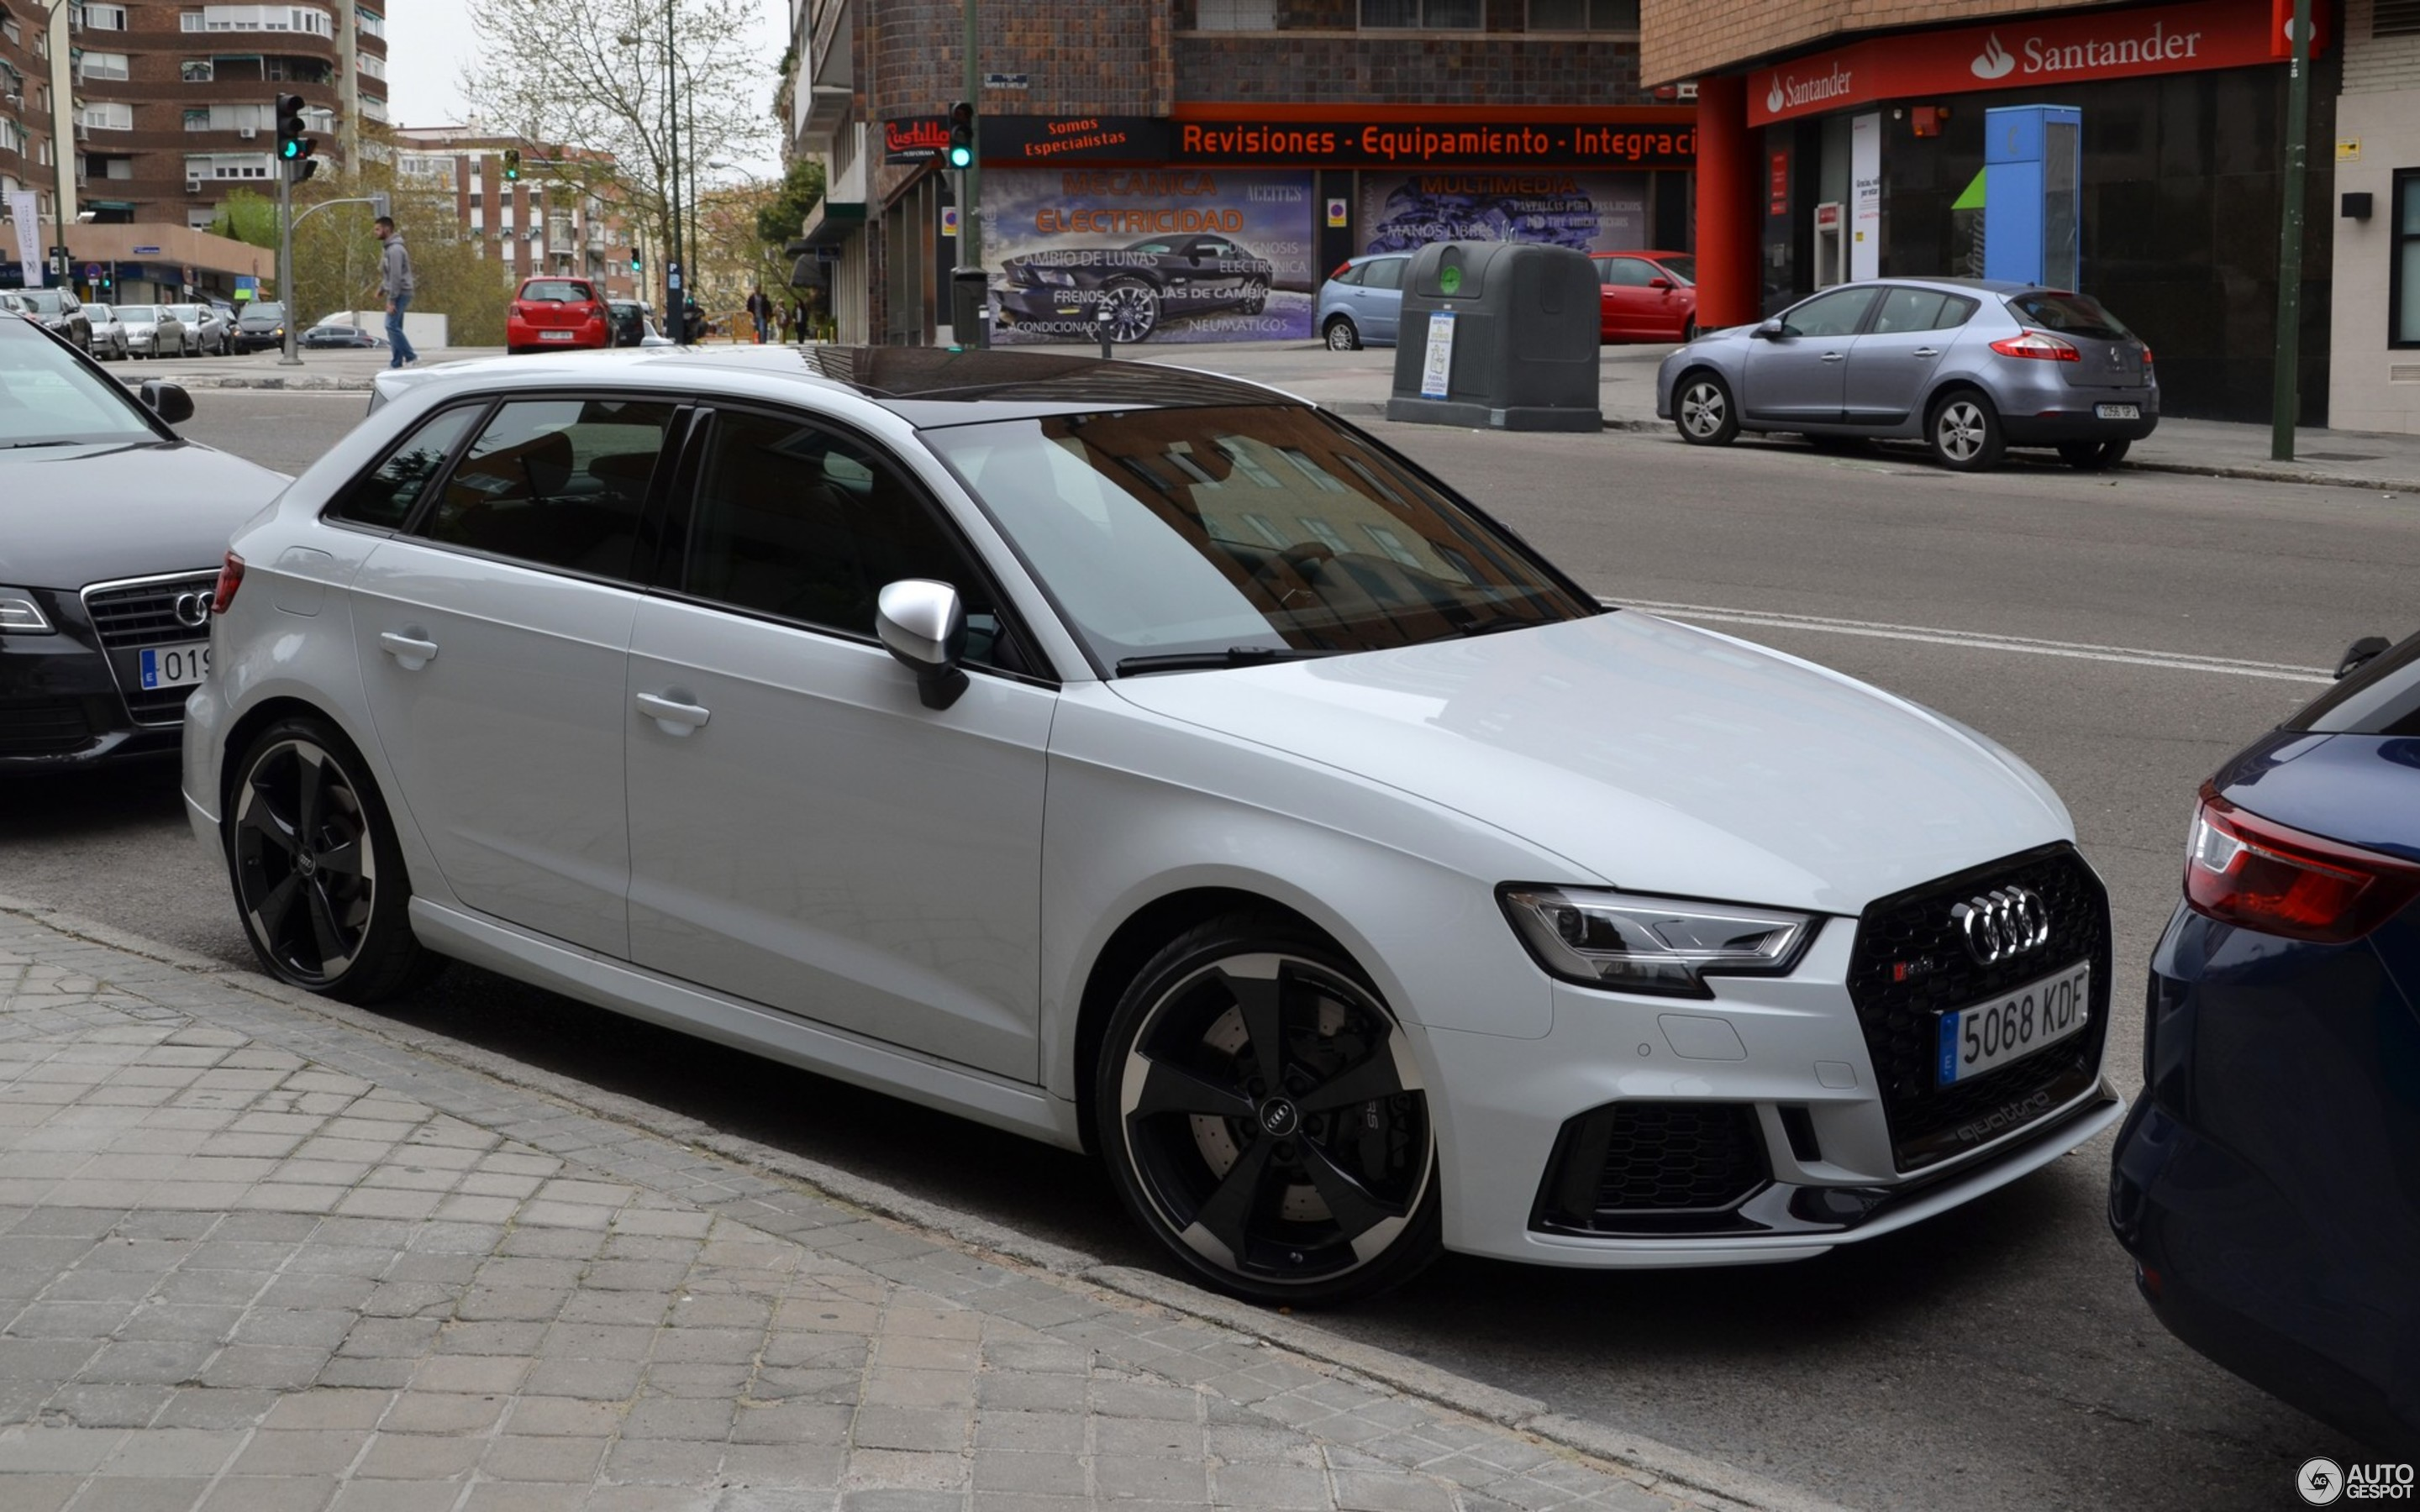 Audi RS3 Sportback 8V 2018 - 24 avril 2018 - Autogespot